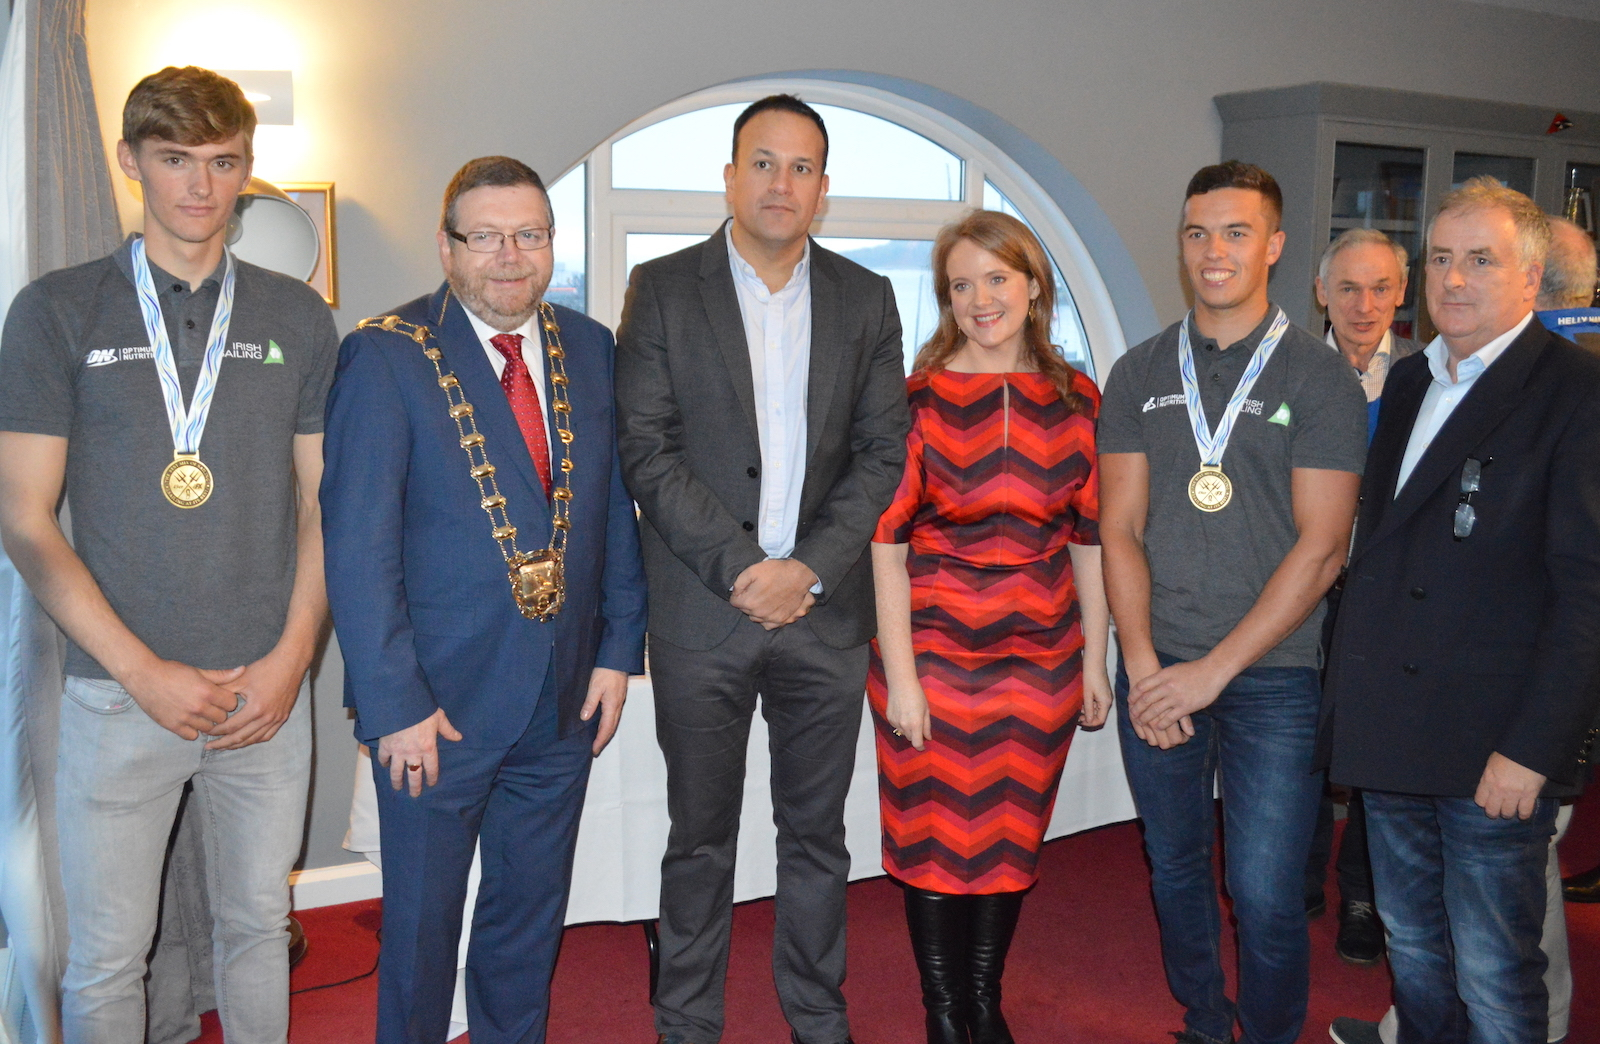 Gold medallists Robert Dickson and Sean Waddilove with Fingal Mayor Anthony Lavin, An Taoiseach, Senator Catherine Noone and Commodore Joe McPeake